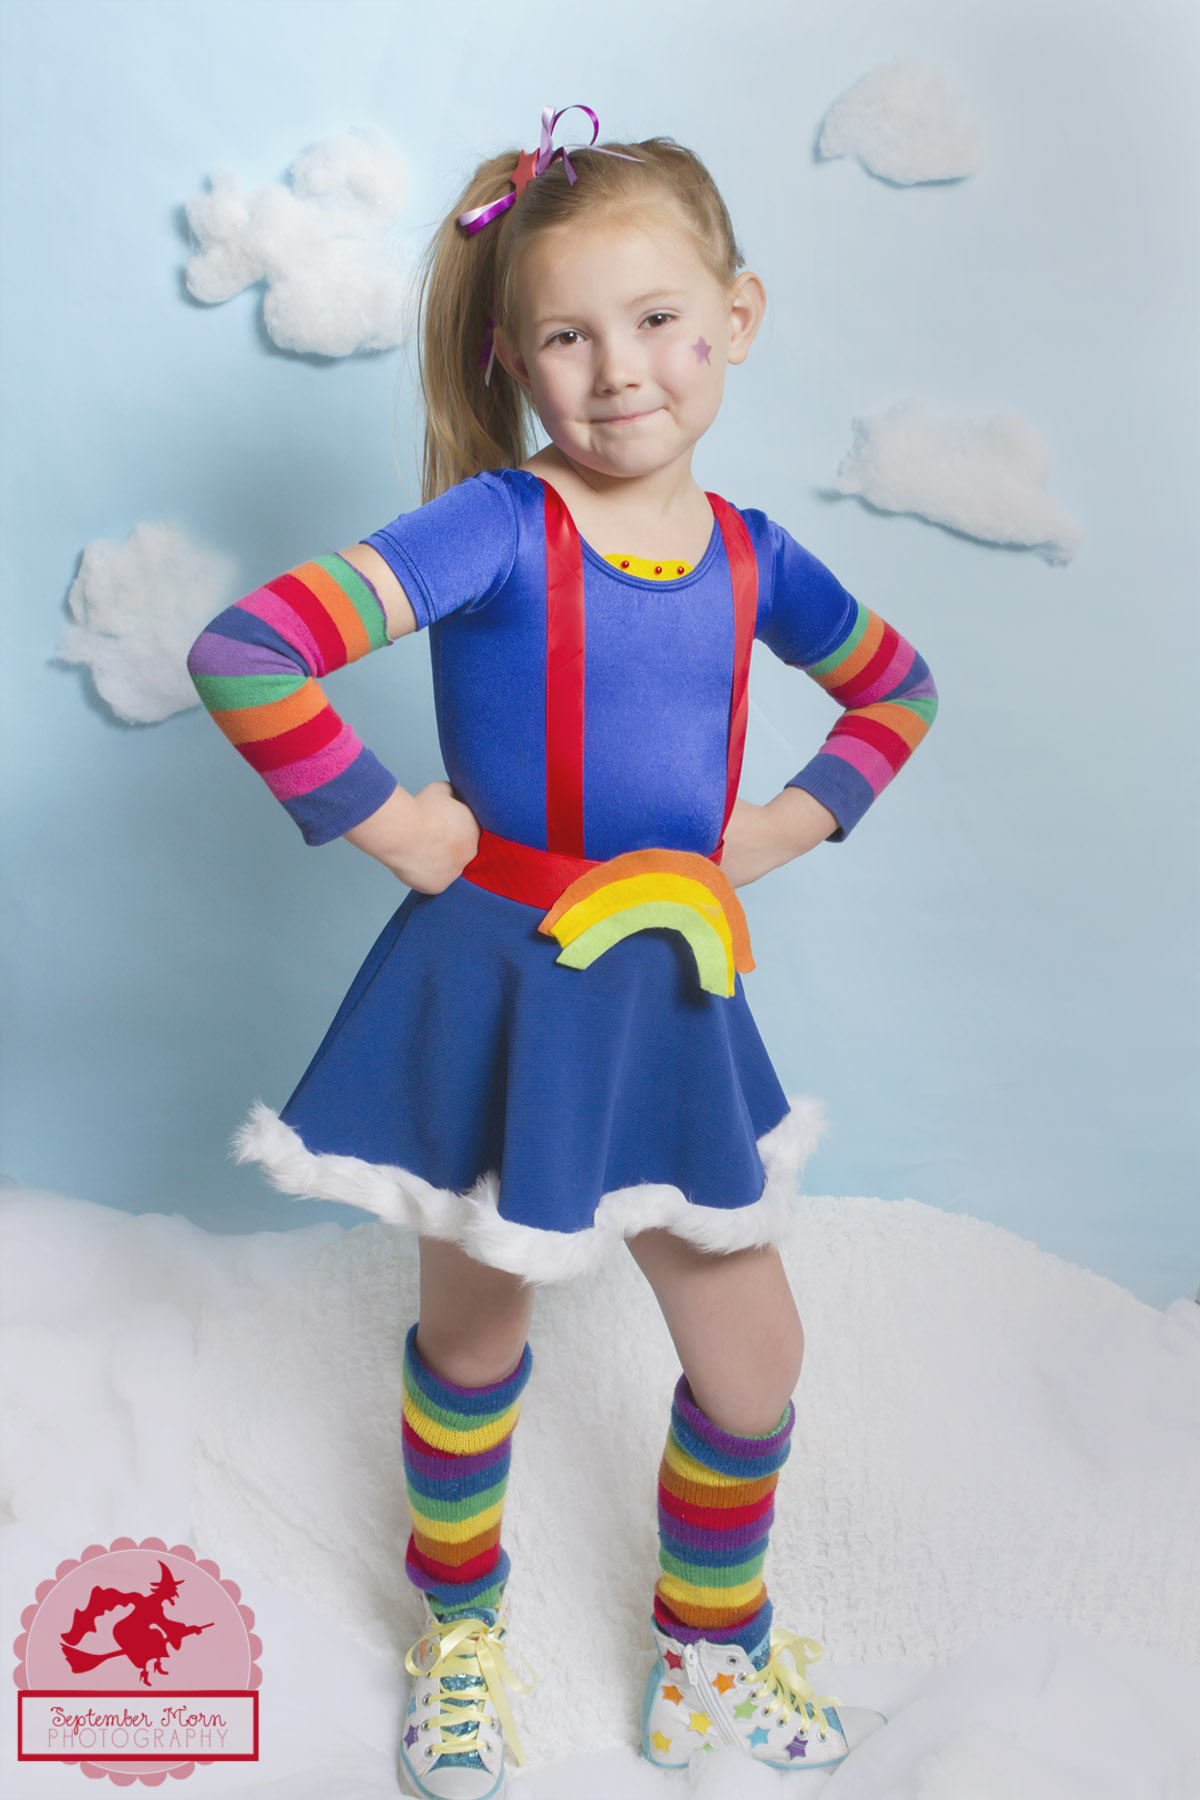 day19rainbowbrite2web